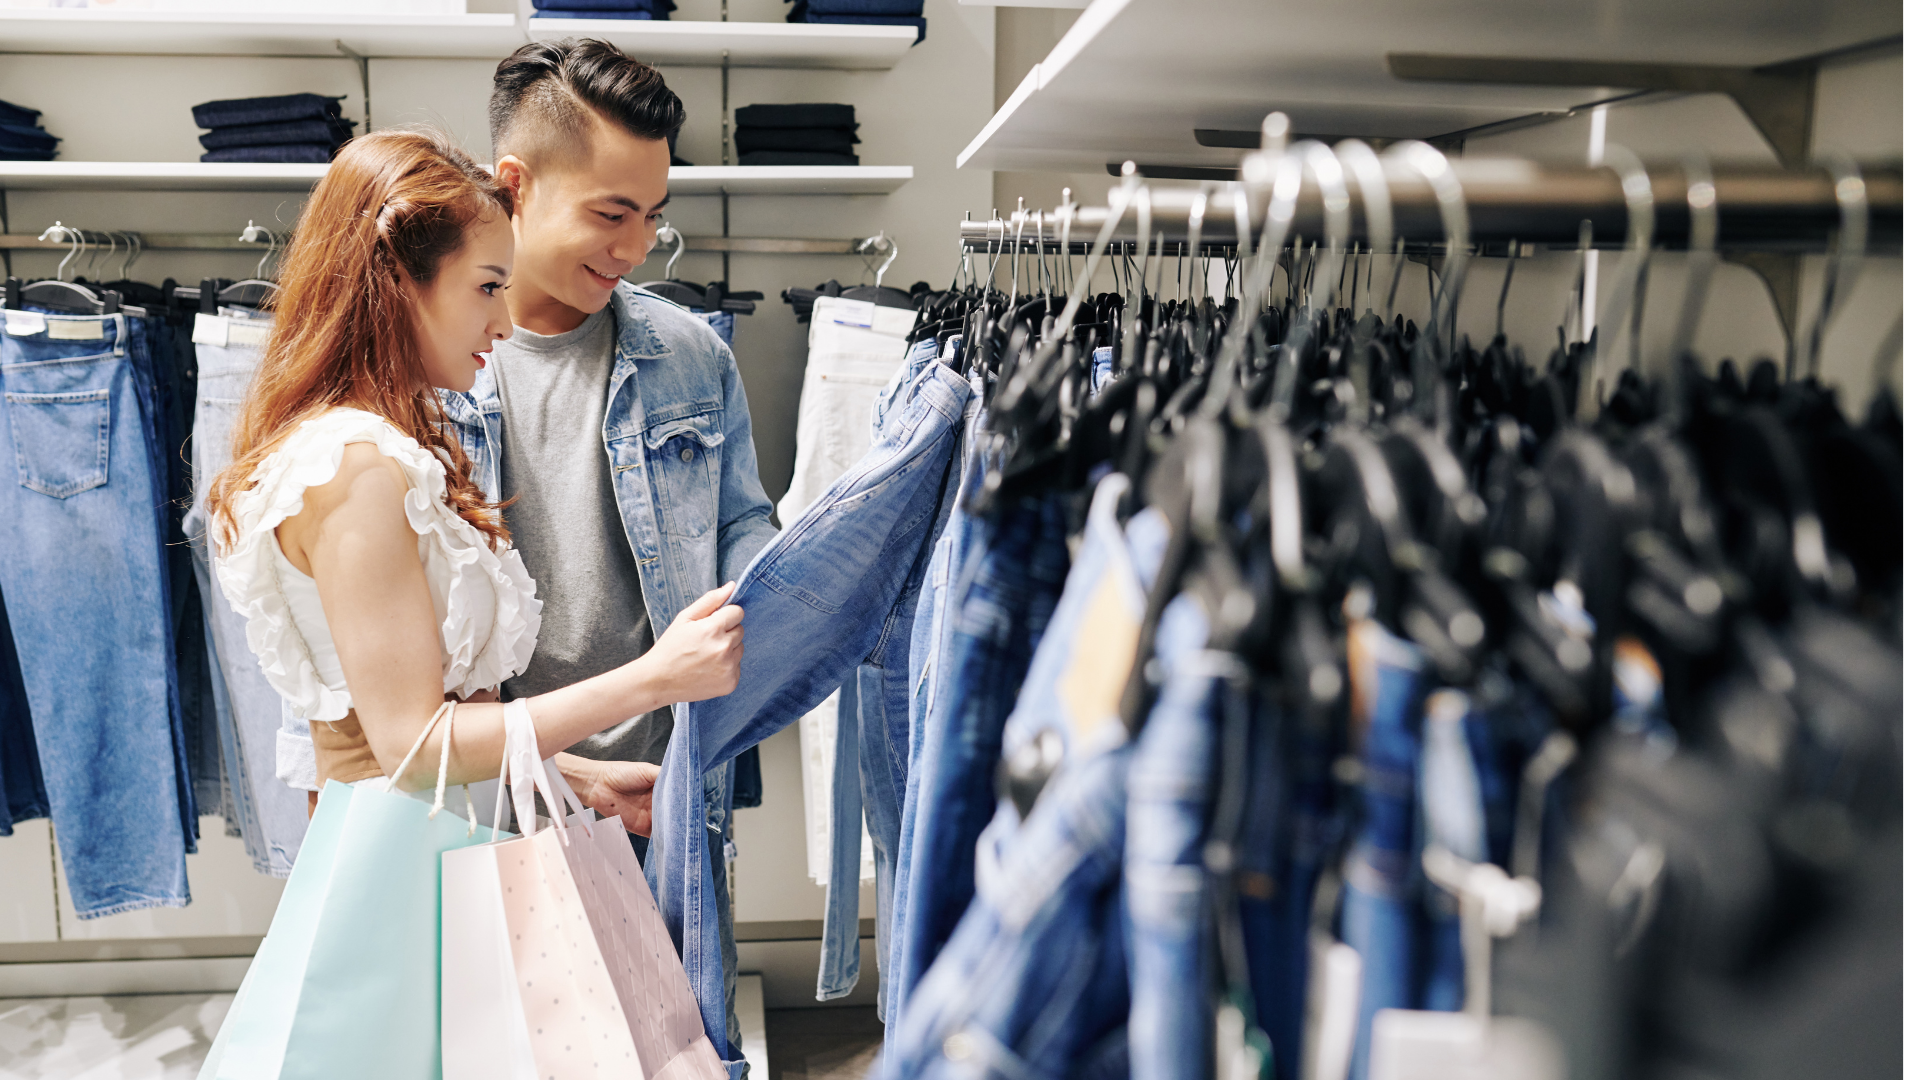 Man and woman looking at a pair of jeans in a retail store.